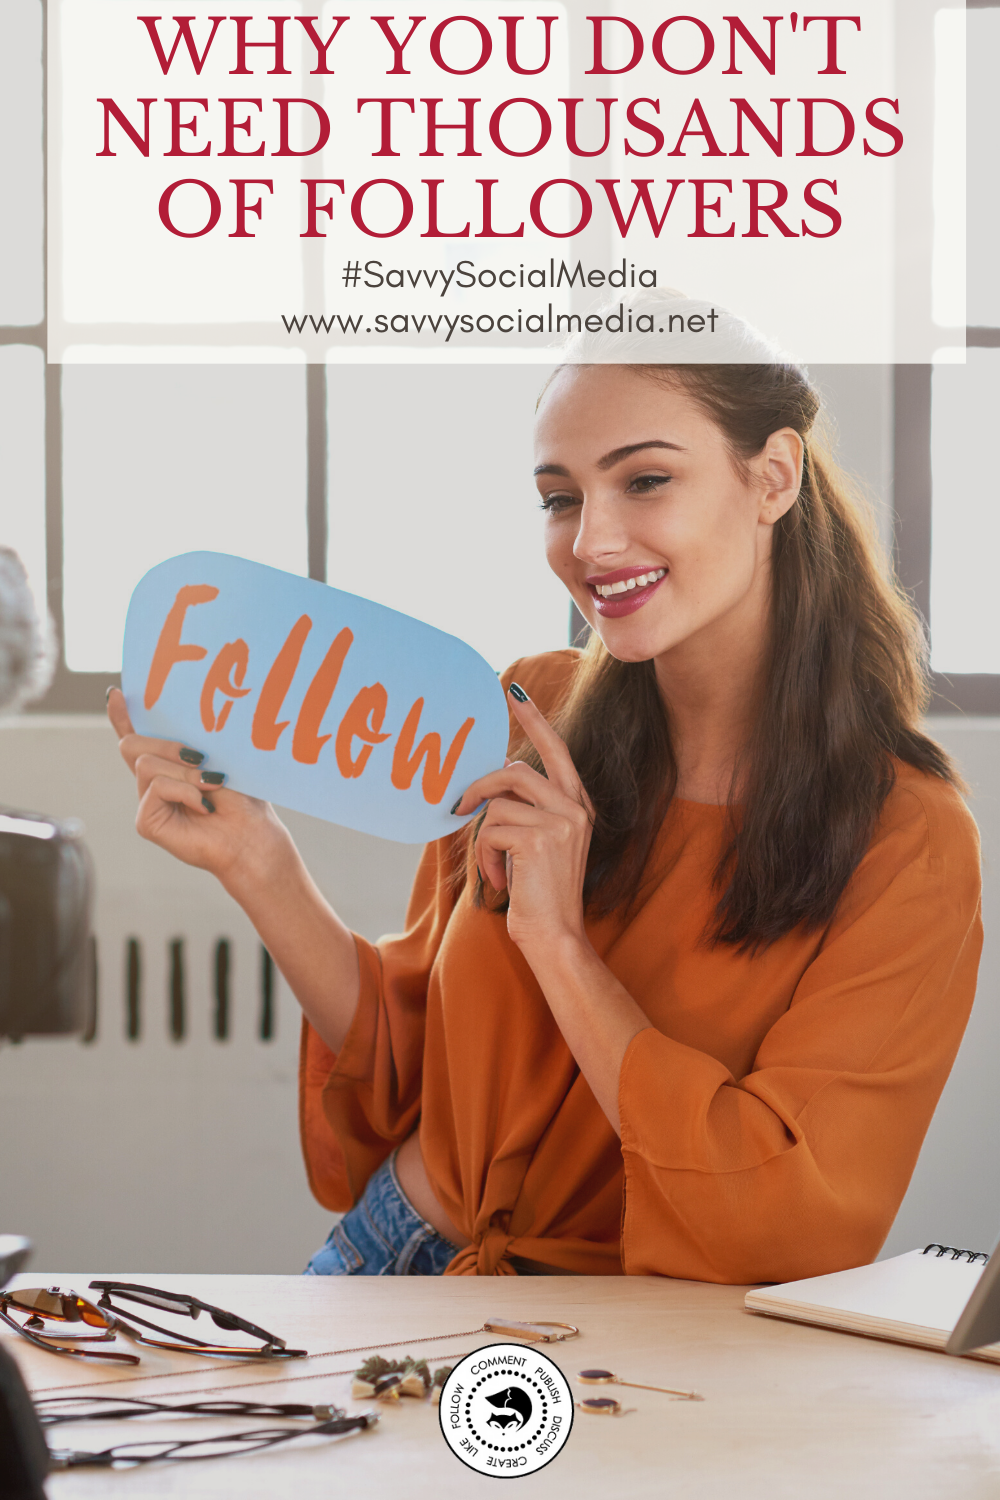 Big numbers on #socialmedia don't equal success. Social media is about connecting with your current and potential customers. It's about sharing valuable information and showing your expertise.